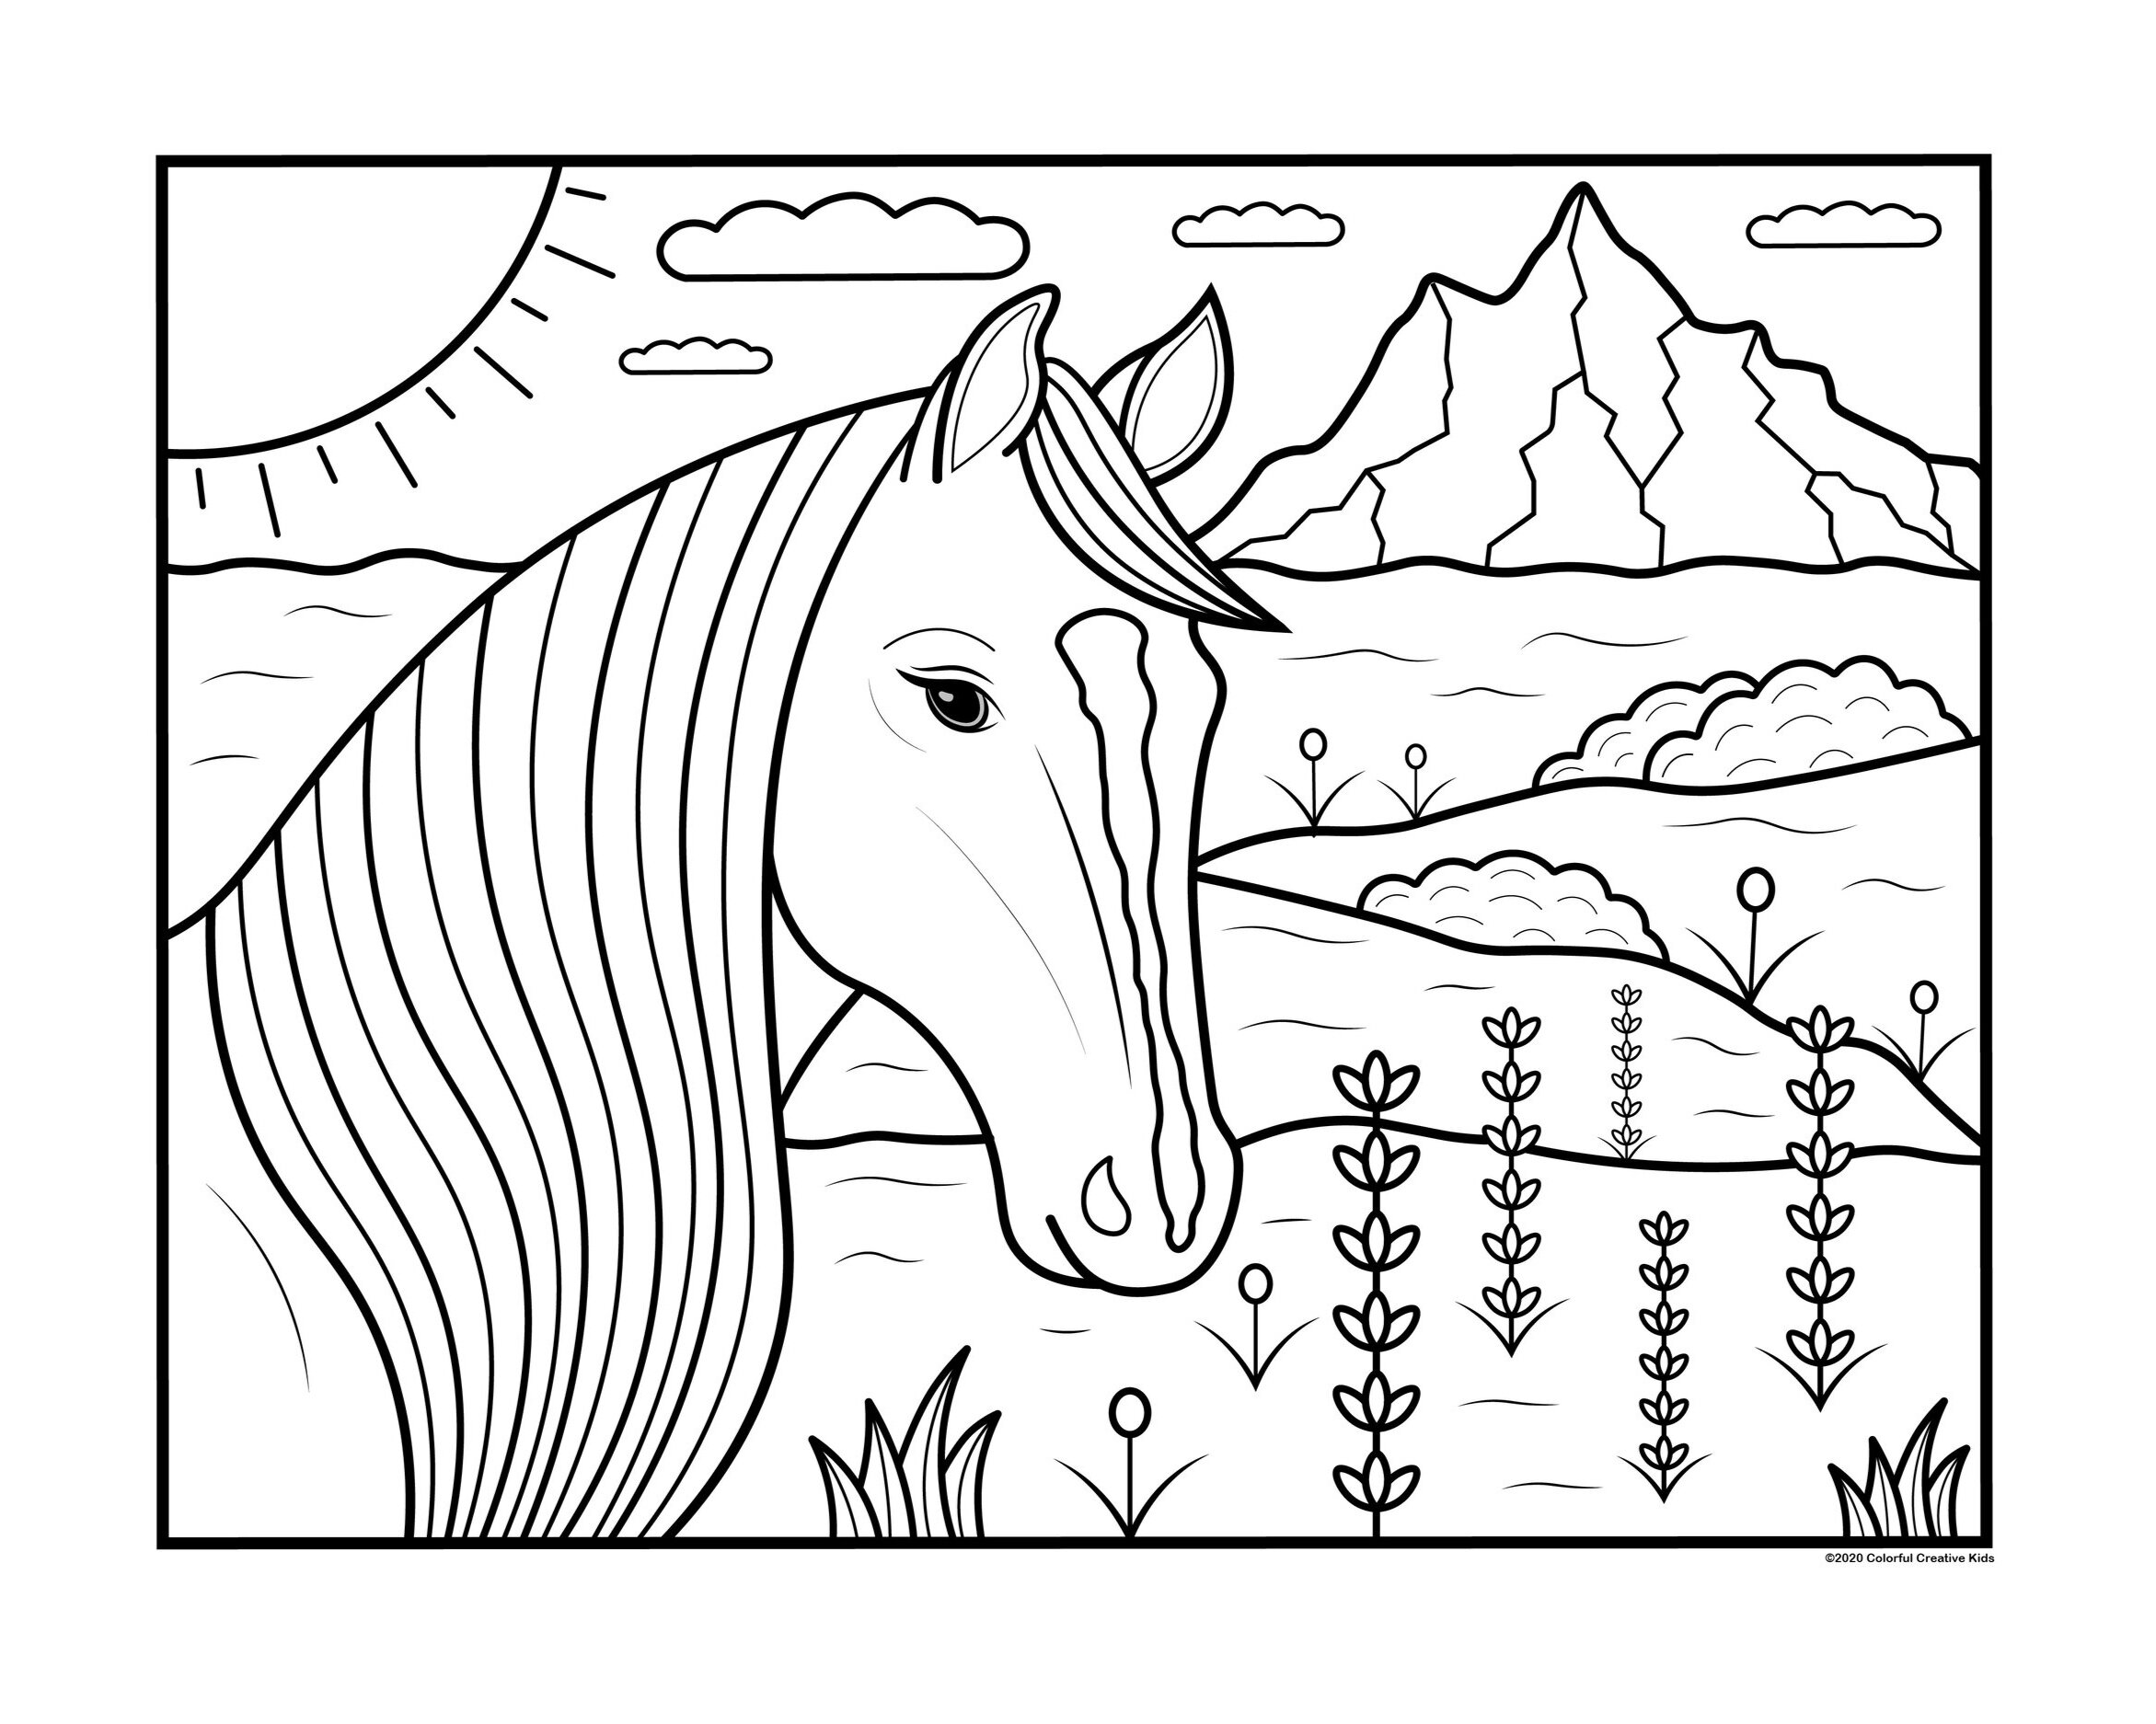 Dolphin Coloring Book | Sea Animals Drawing and Coloring Page for ... | 800x1000